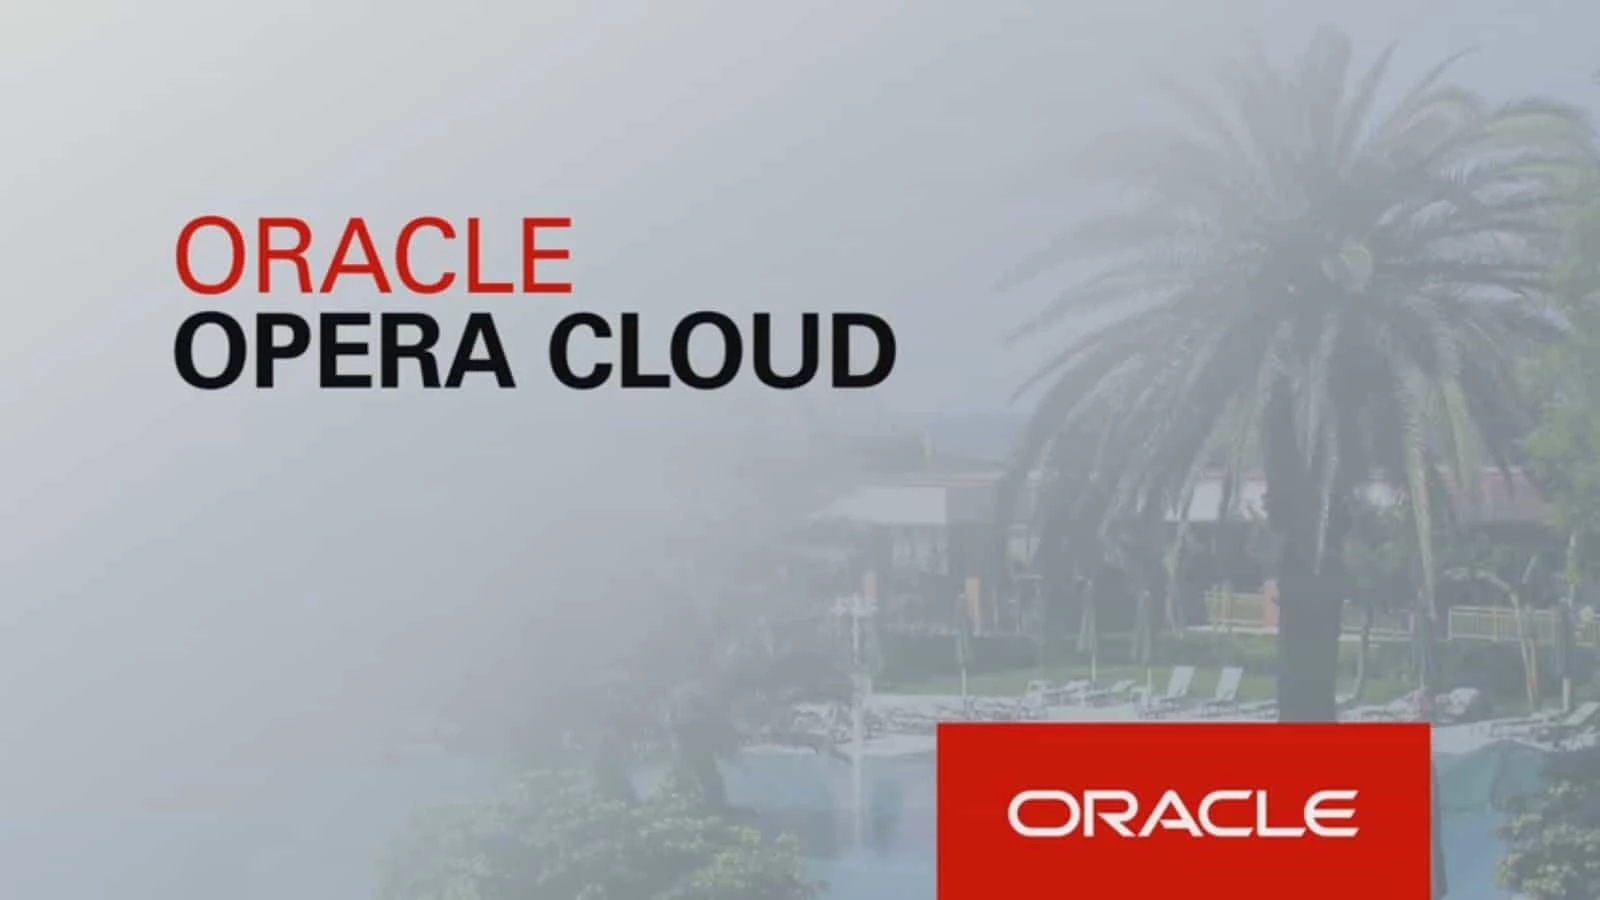 IPERA Starling Cloud Is Certified with Oracle Opera PMS Cloud